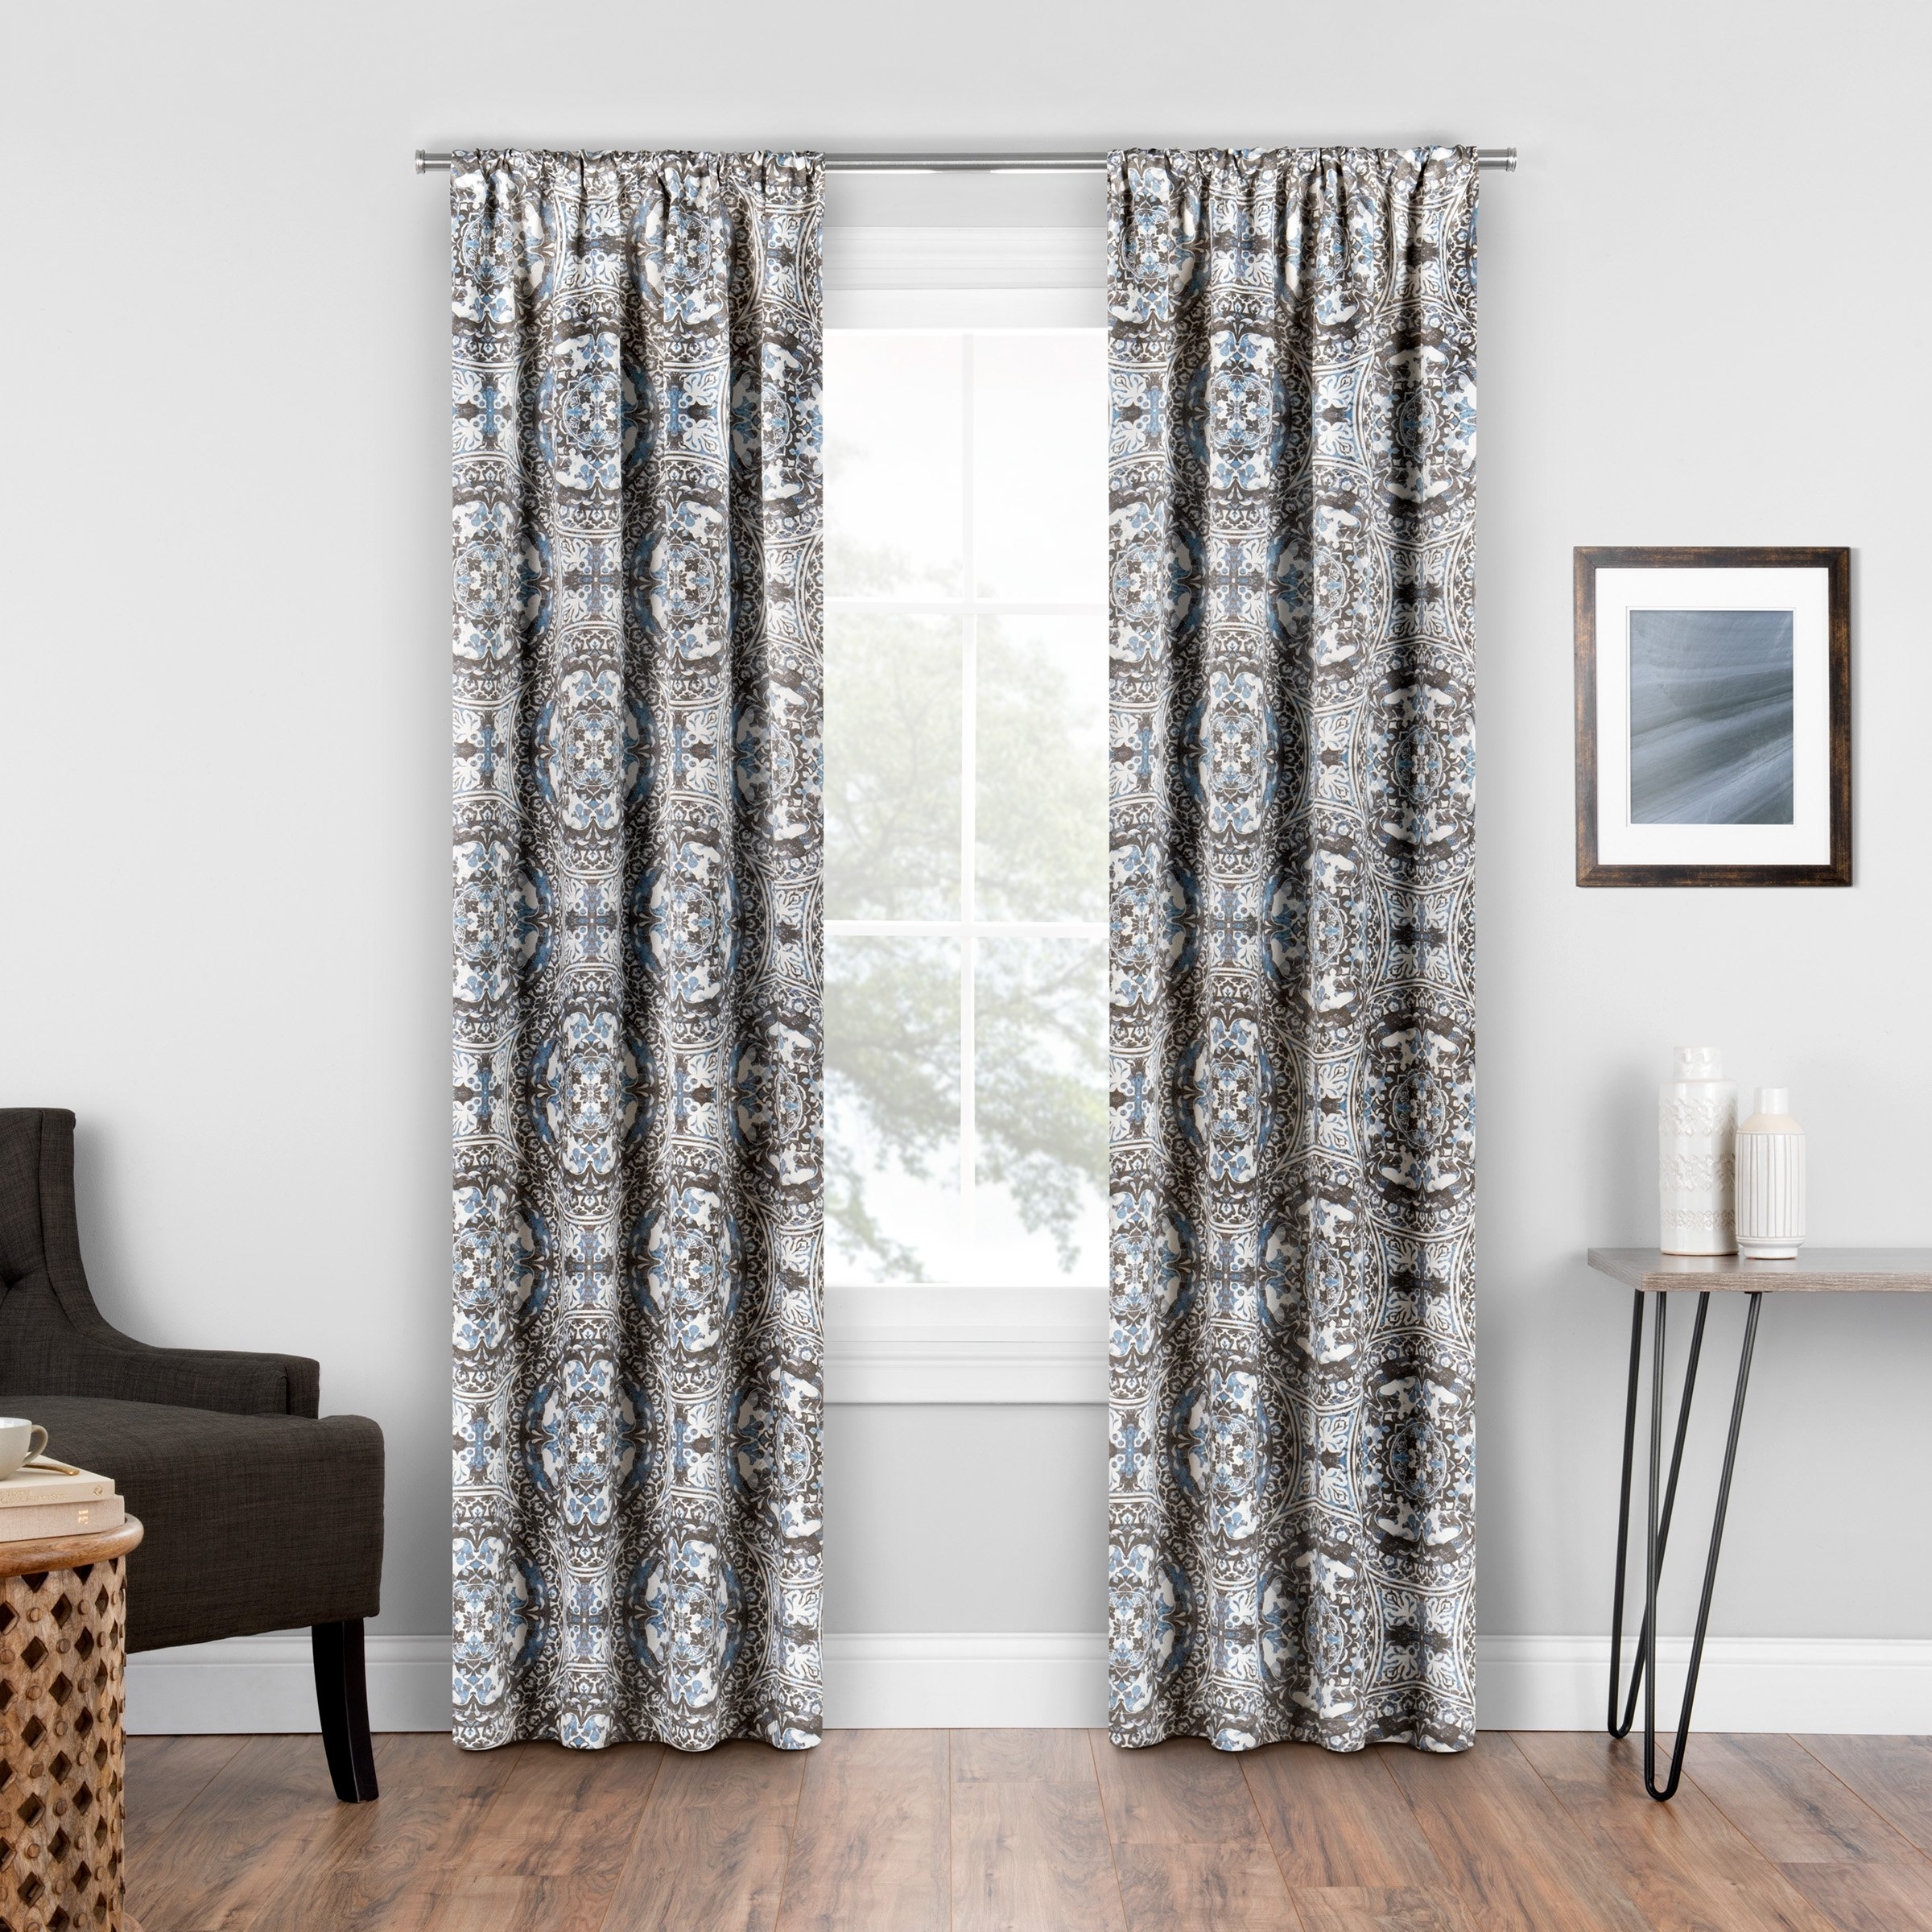 Eclipse Islington Room Darkening Single Room Darkening Window Curtain, 37x95, Spa